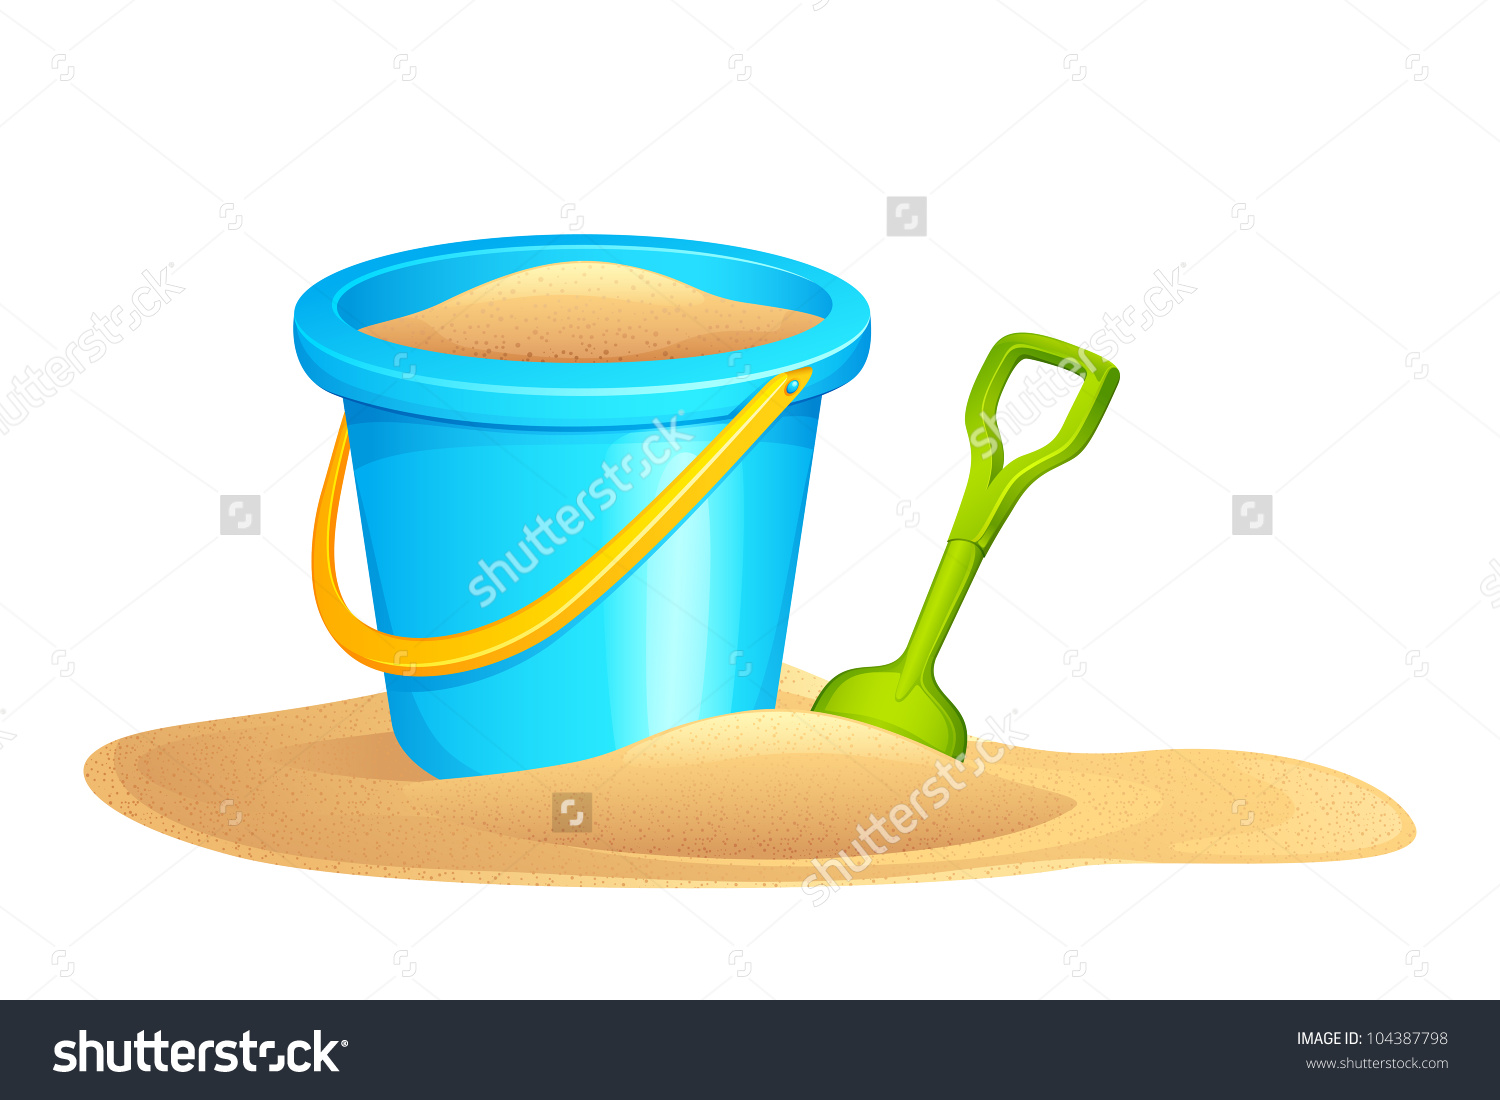 Vector Illustration Sandpit Kit Sand Stock Vector 104387798.